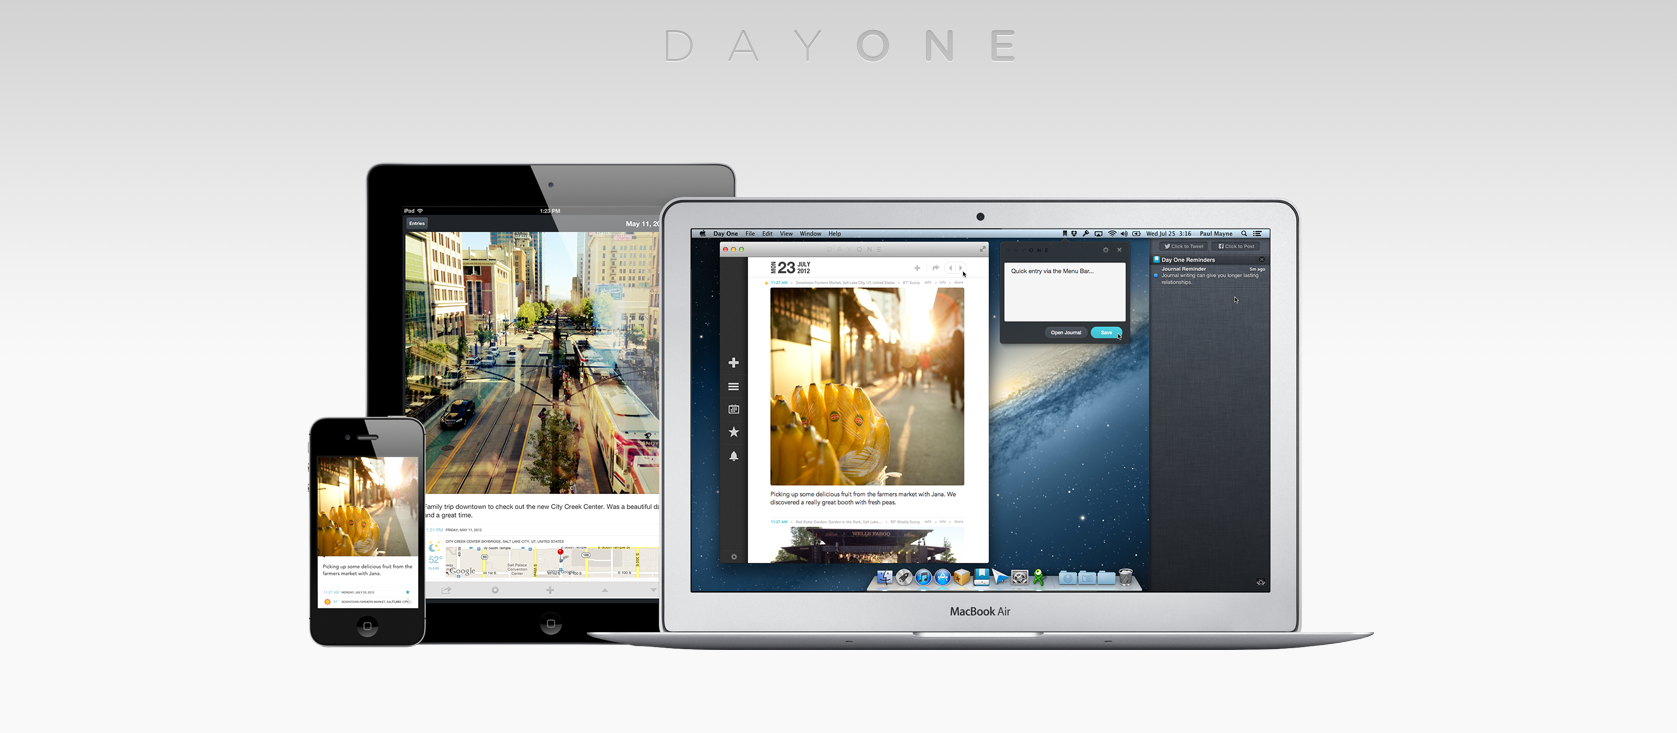 Day One (Journal/Diary) - iOS (iPhone, iPod touch, iPad) & Mac OS X